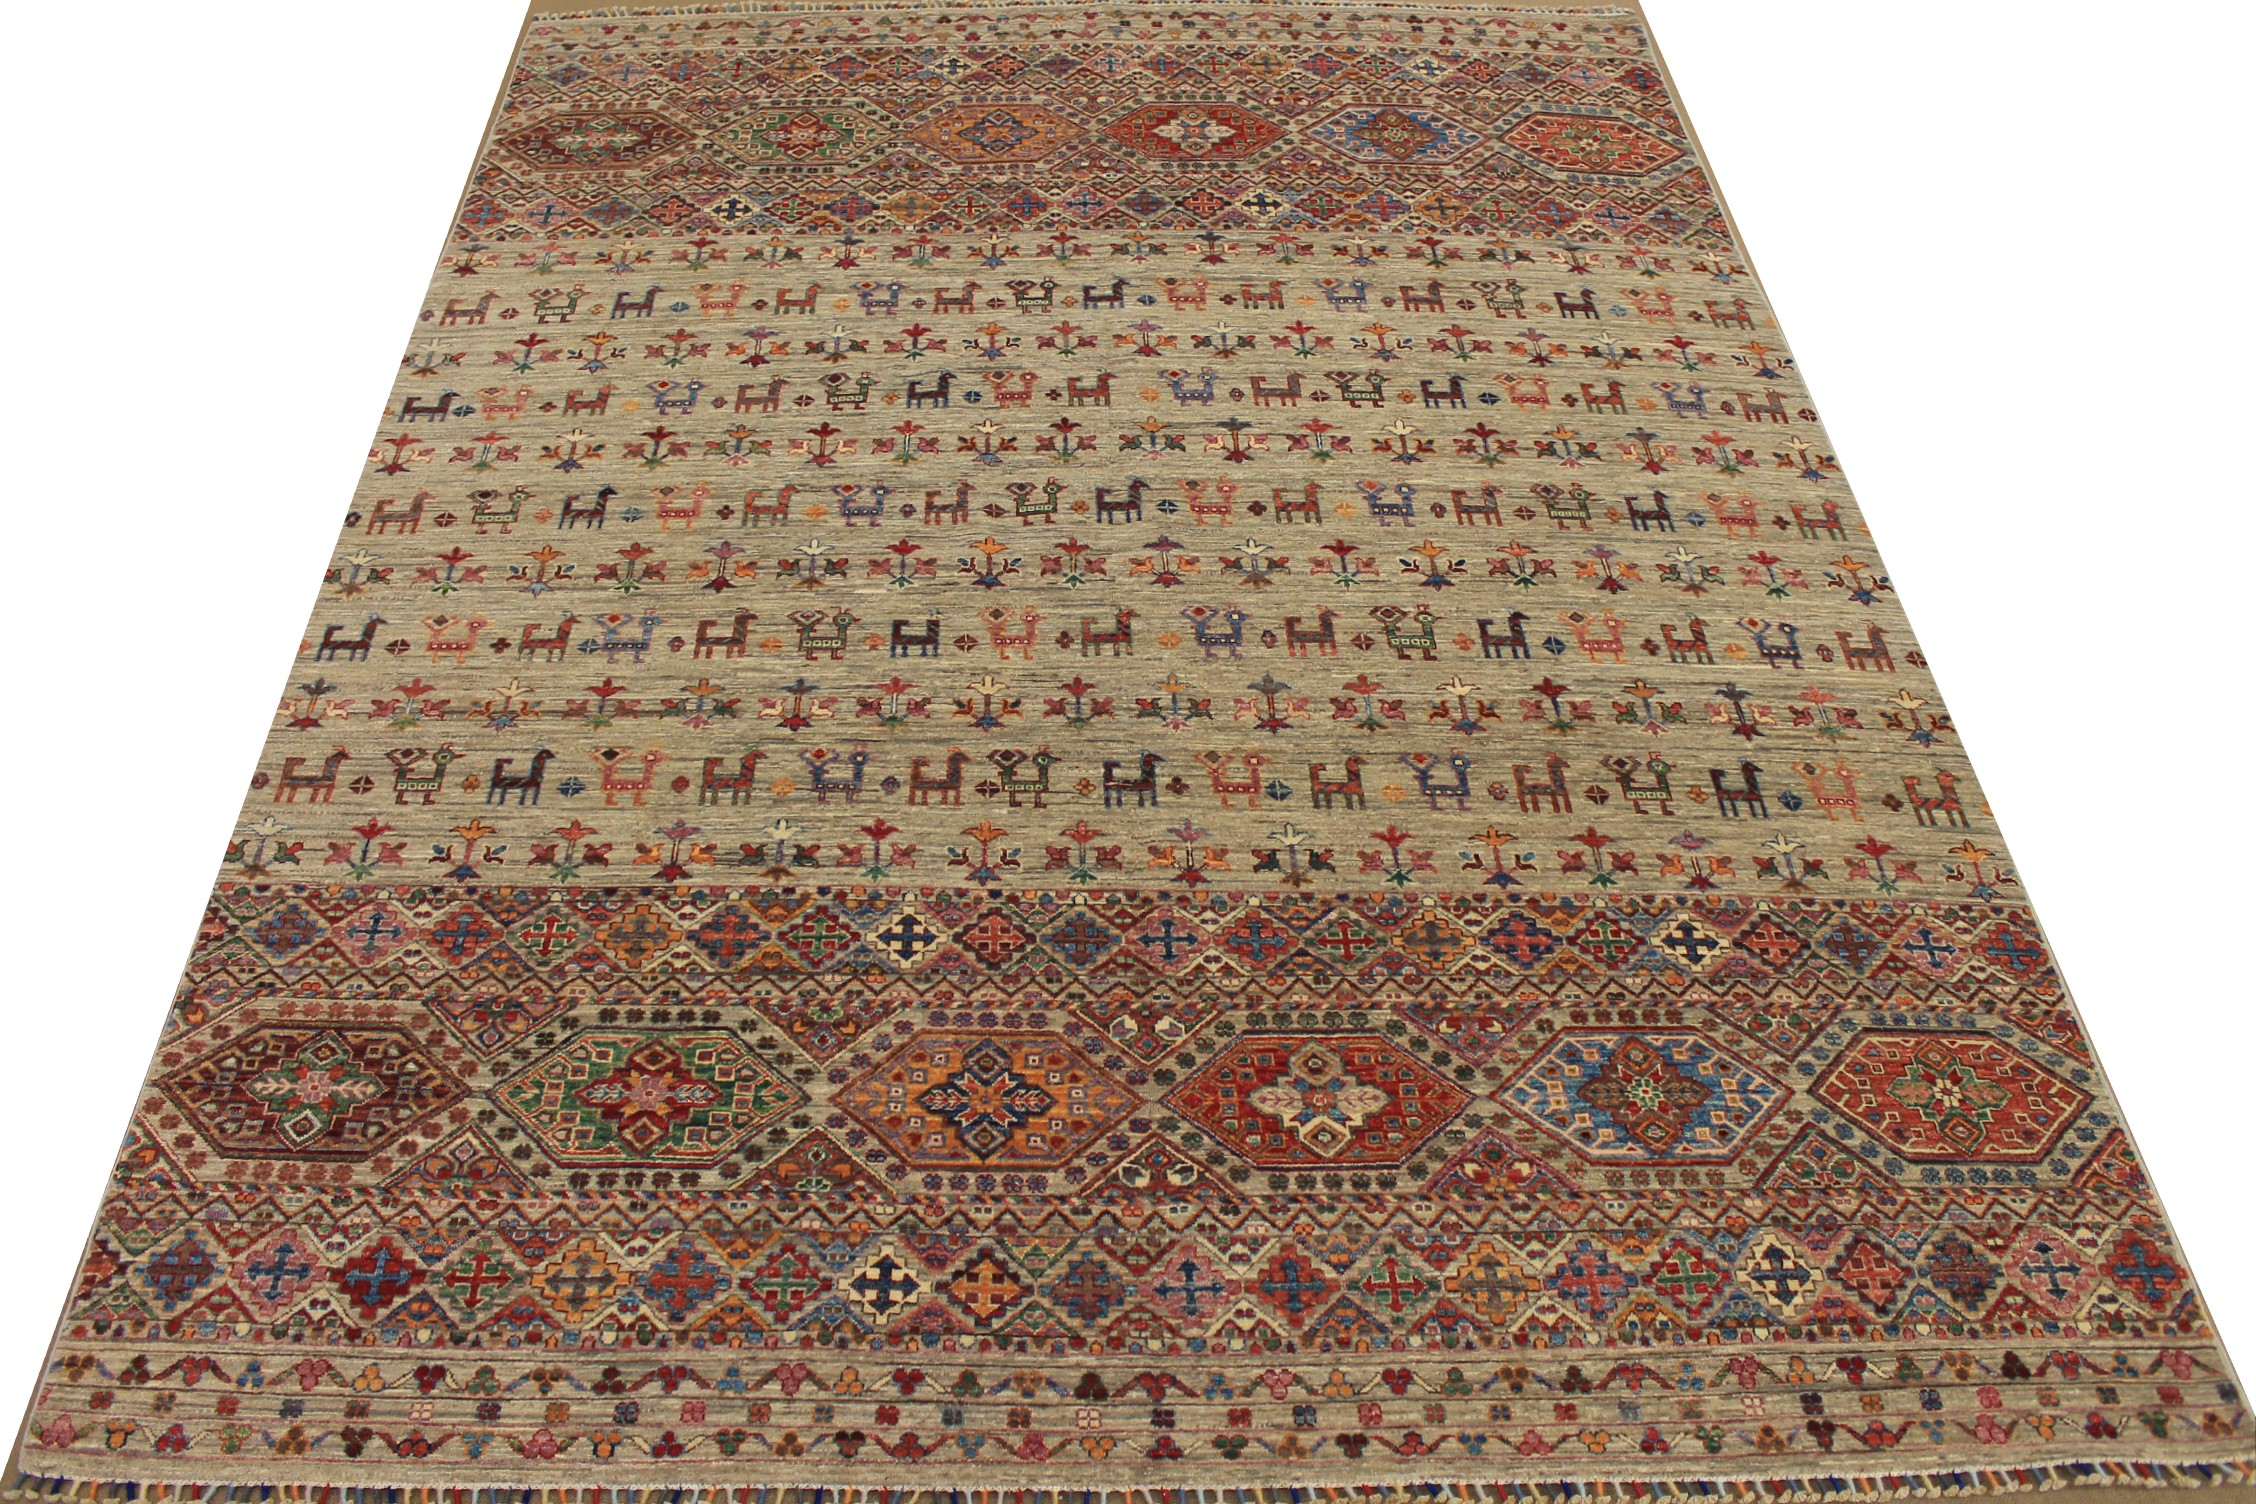 8x10 Tribal Hand Knotted Wool Area Rug - MR025313